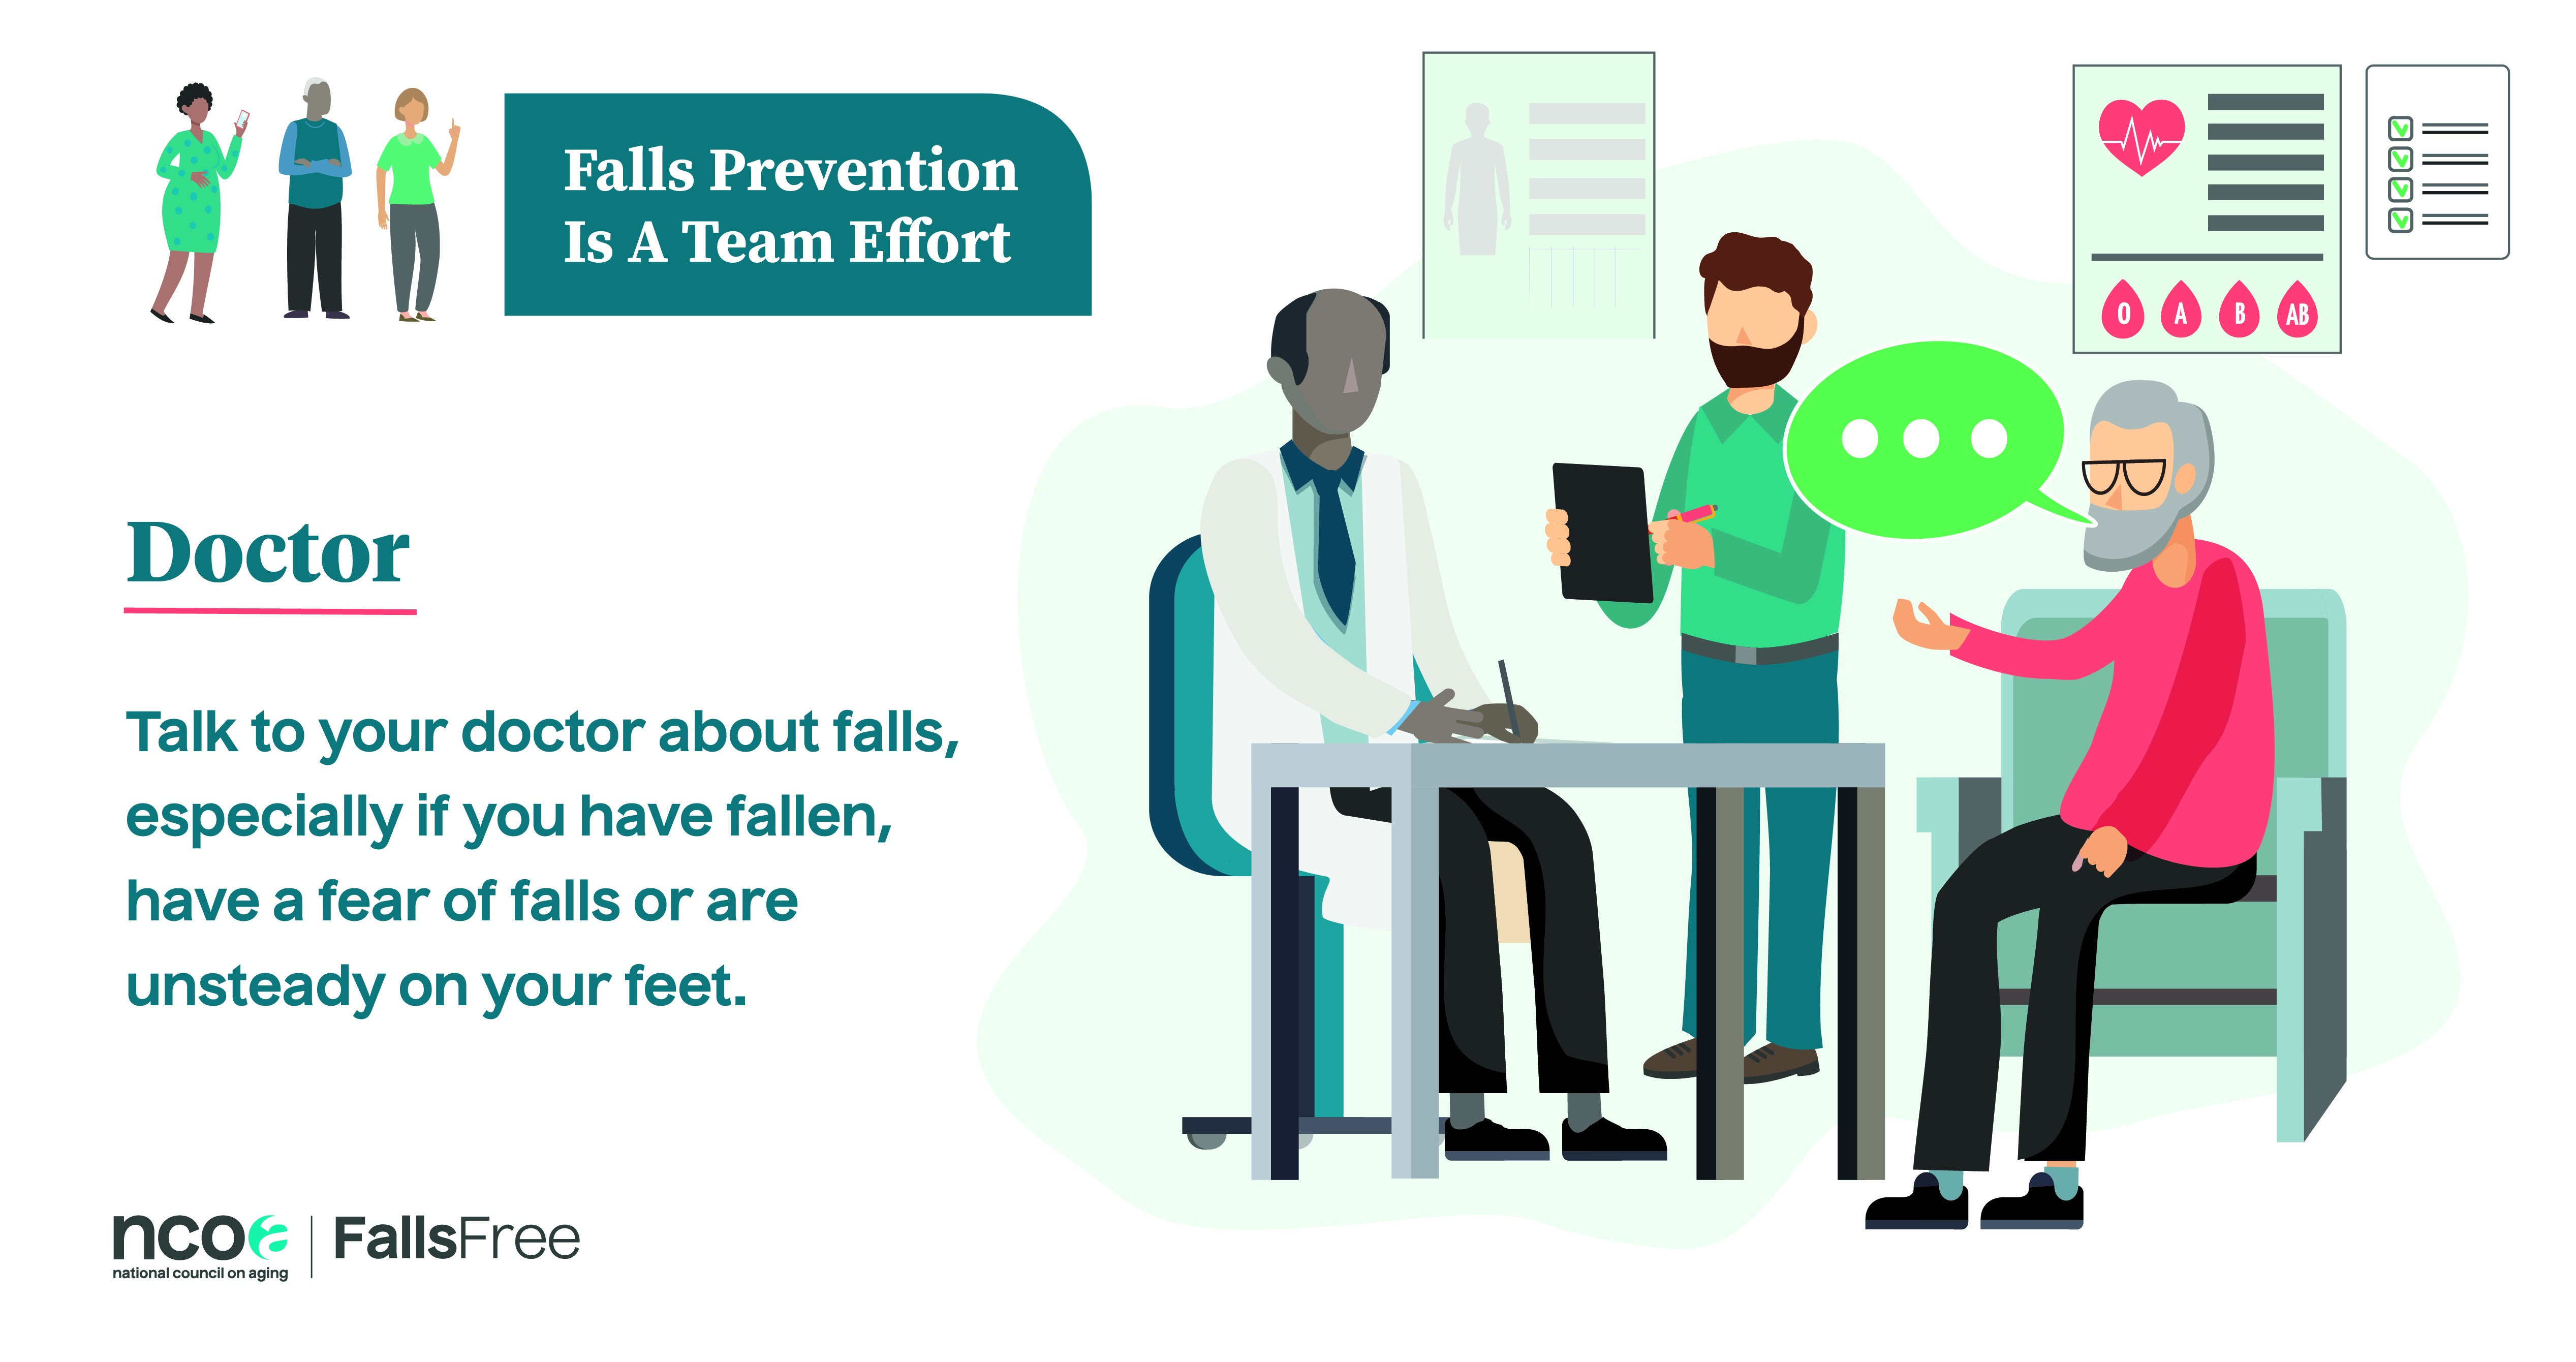 Falls prevention is a team effort. Talk with your doctor about falls.